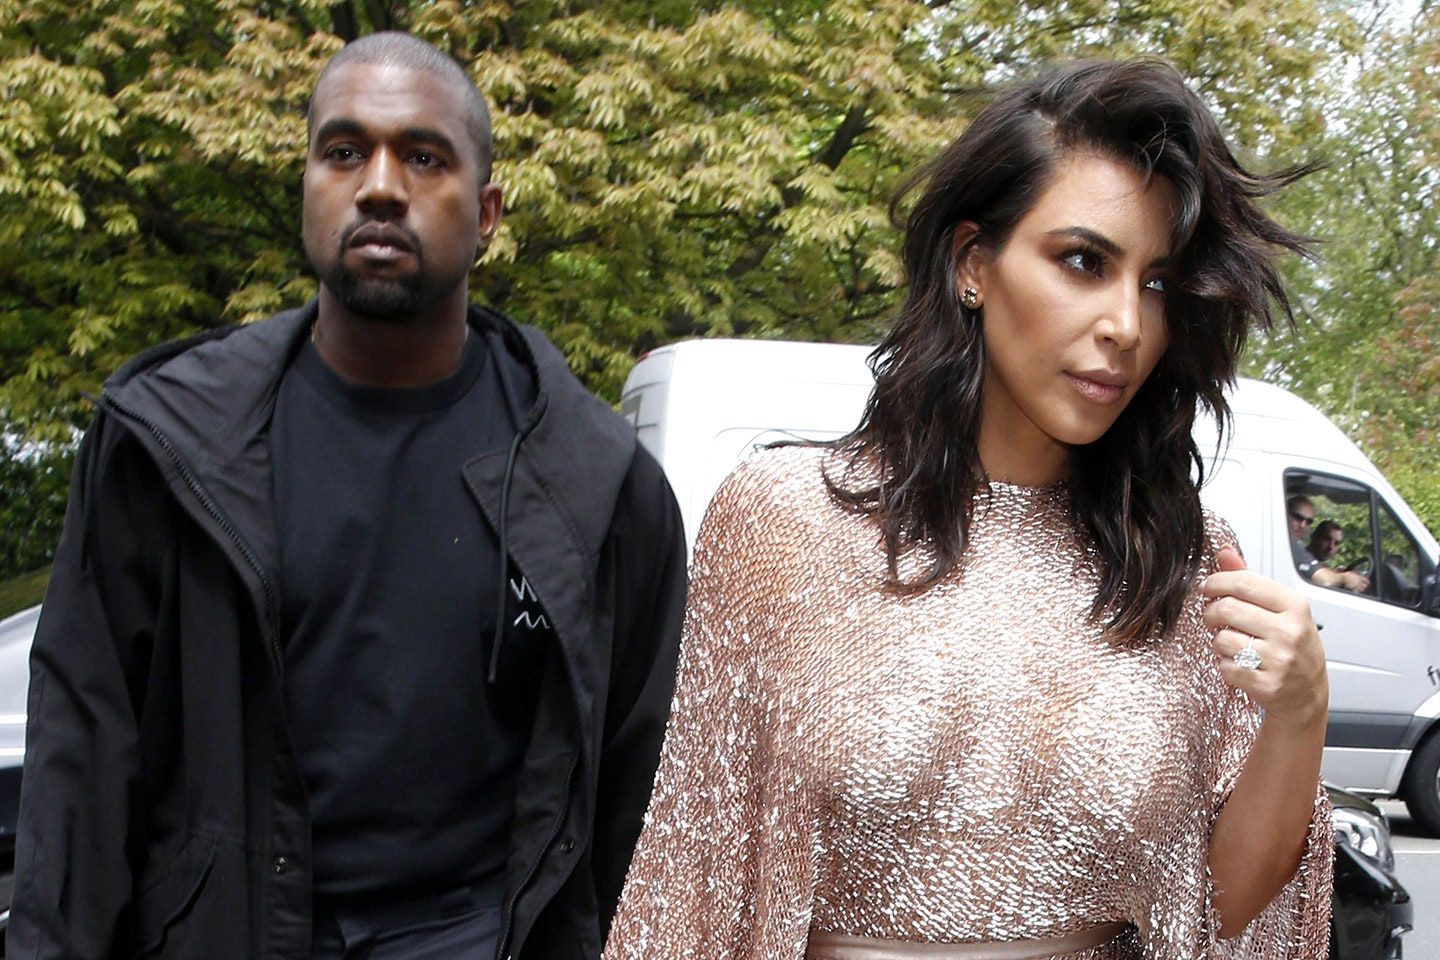 Kim Kardashian And Kanye West Reunite For The First Time Following His Apology - See The Pics